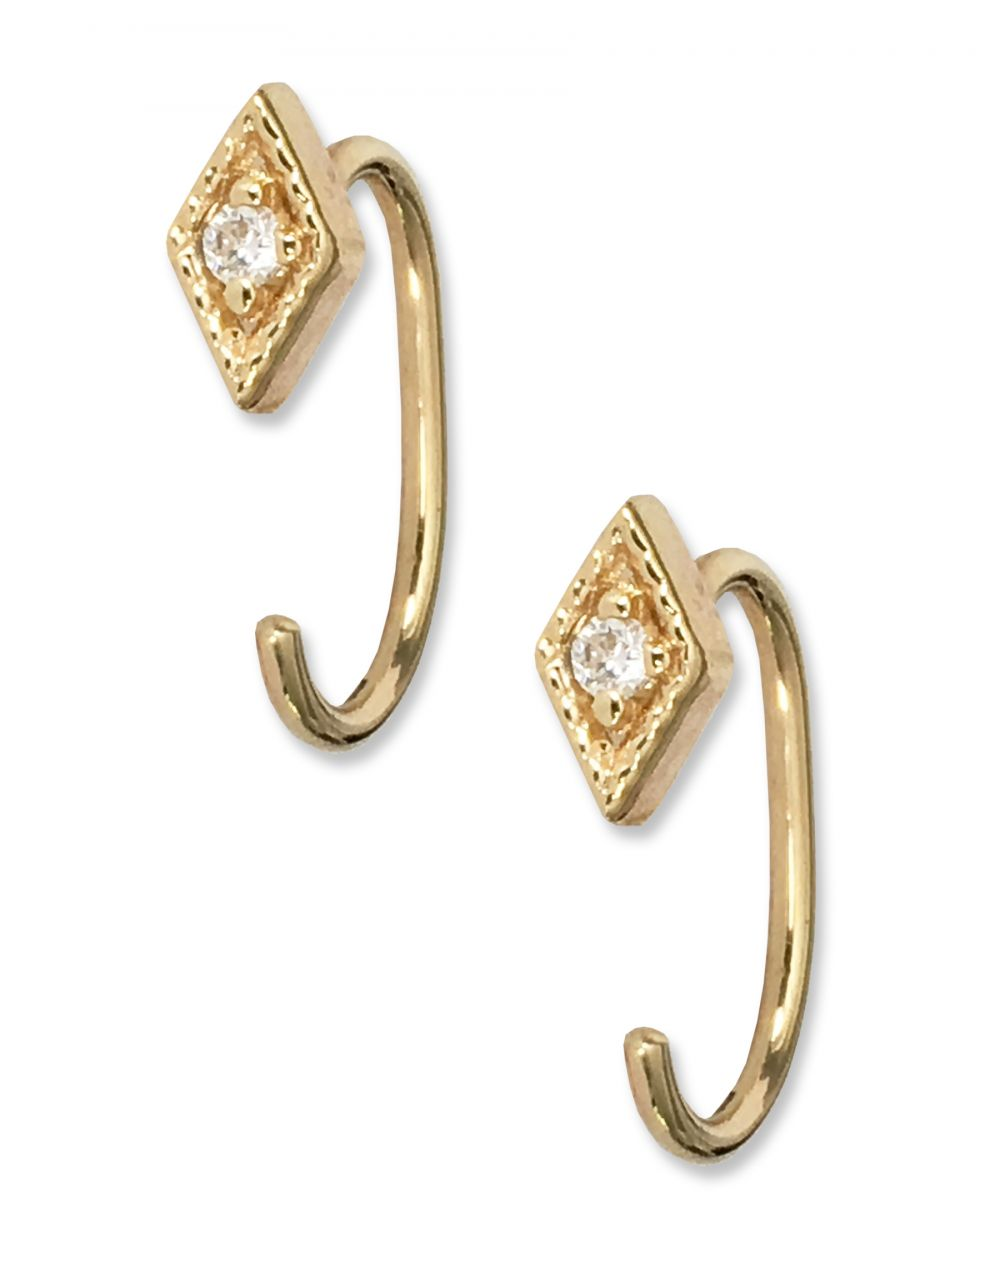 GONDAL OPEN HOOPS | 14K Yellow Gold with White Diamonds - Eddera